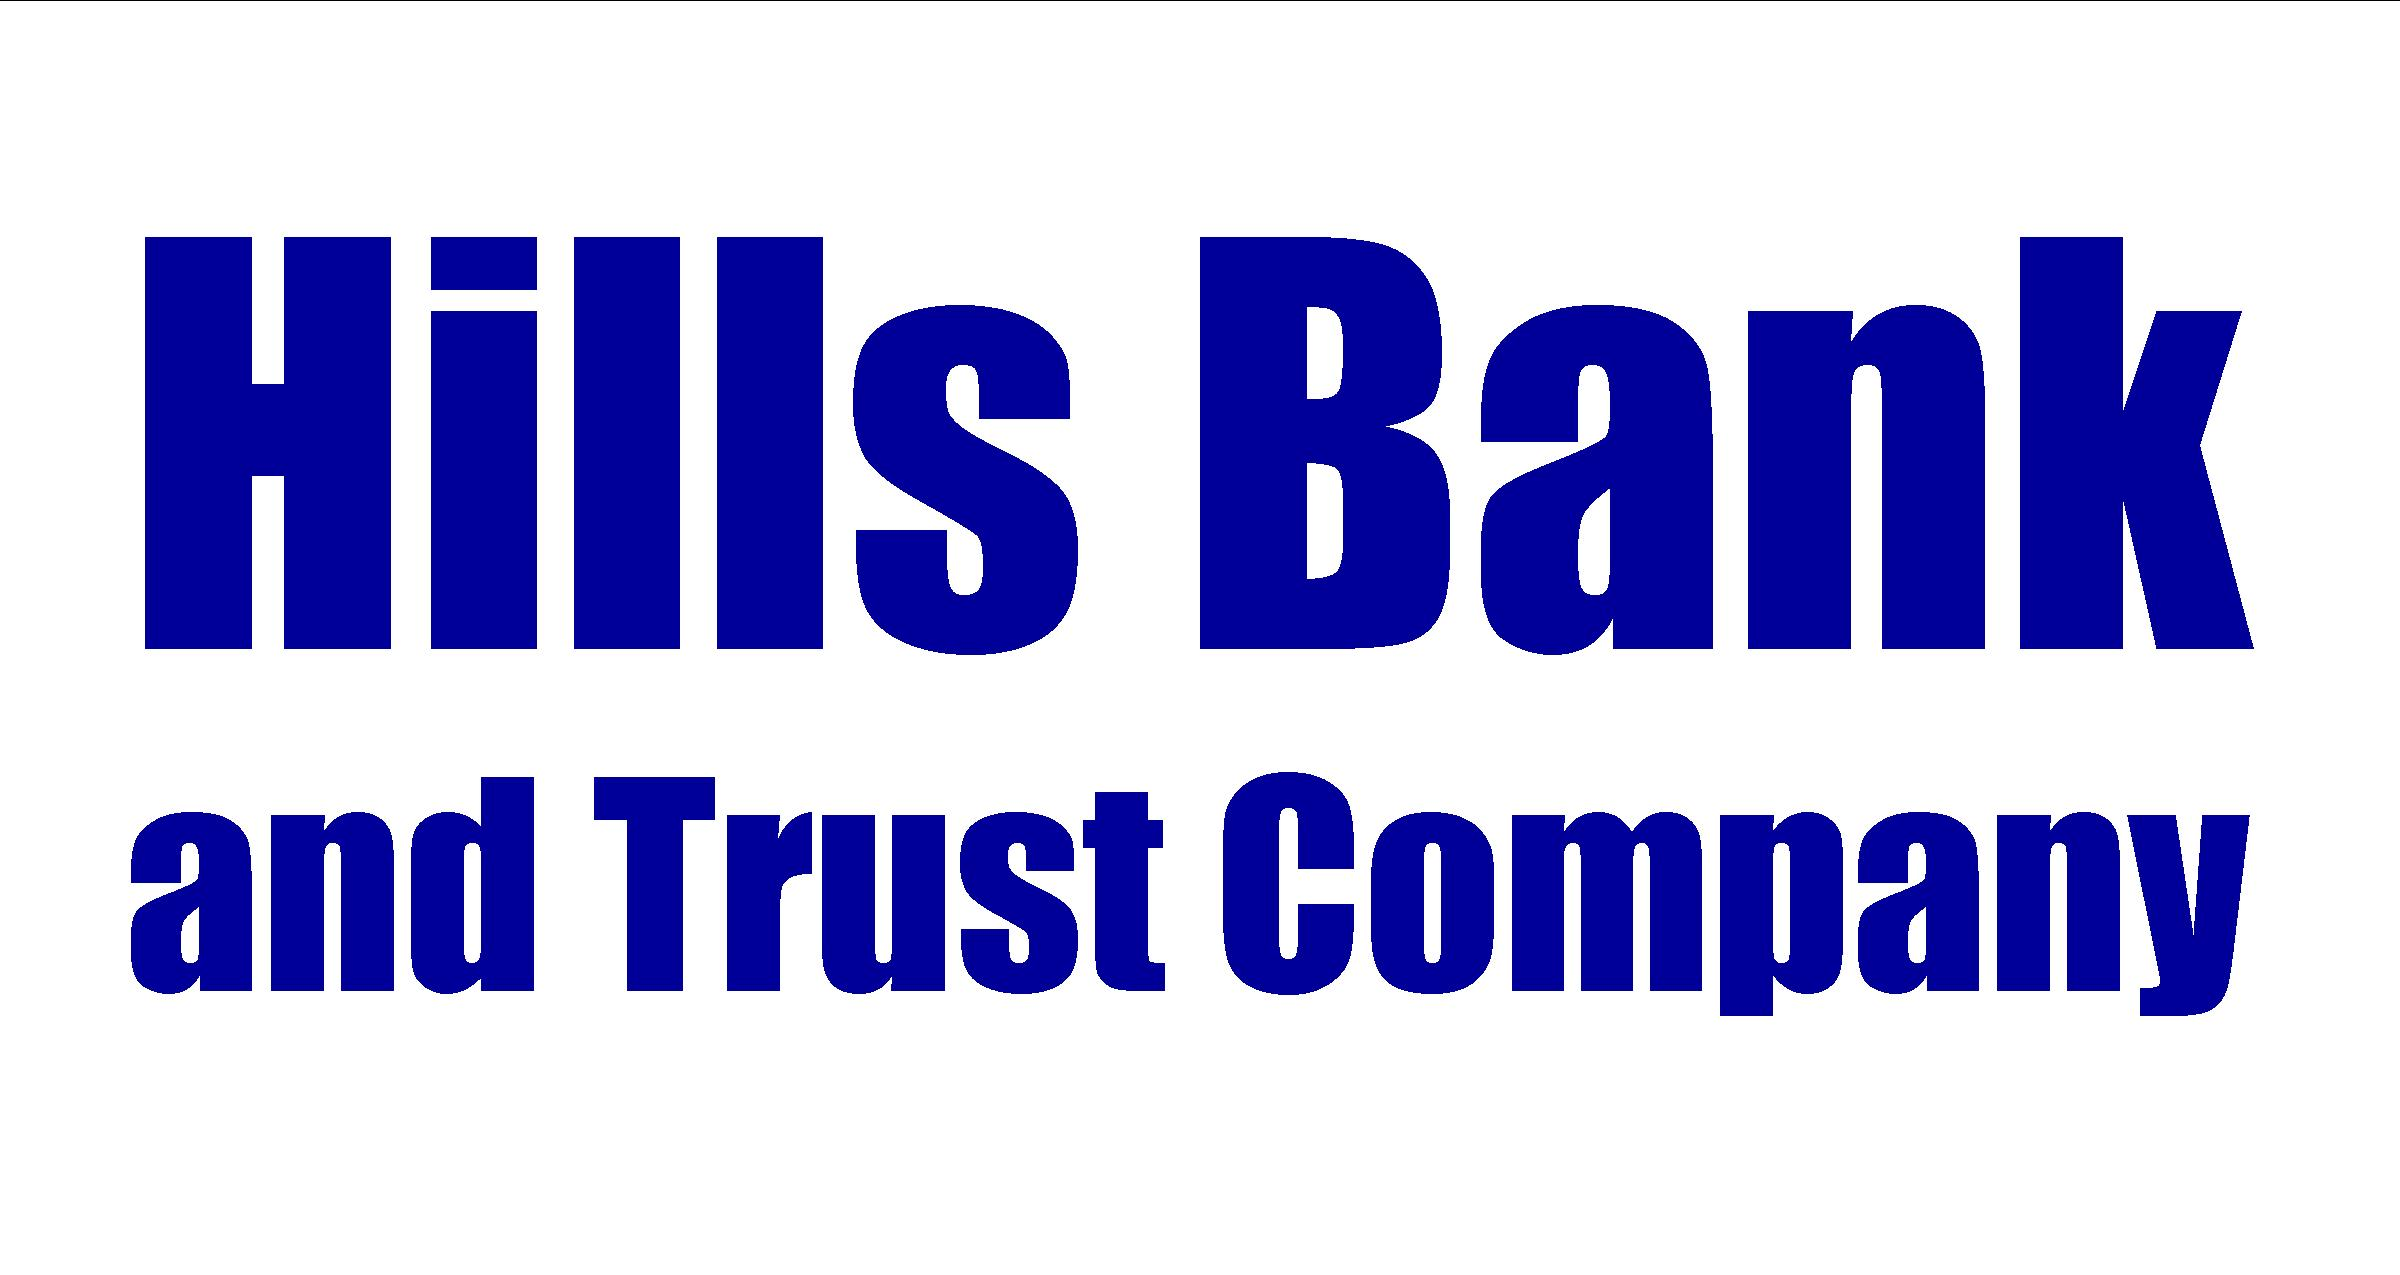 10 Hills Bank Logo TV.jpg